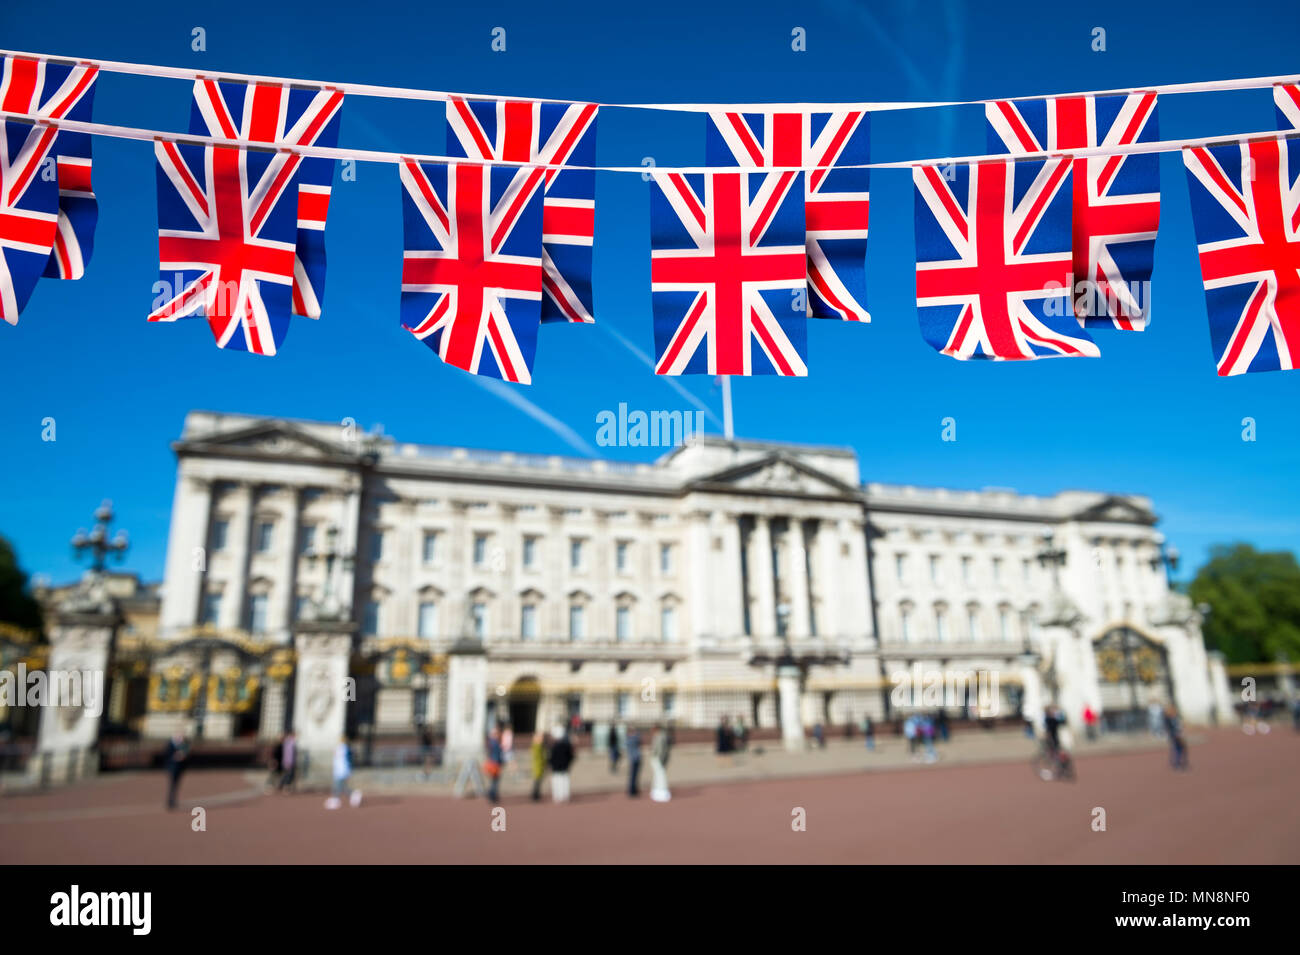 Union Jack flag bunting décore le centre commercial en face de Buckingham Palace avant le mariage royal à Londres, en Angleterre. Photo Stock